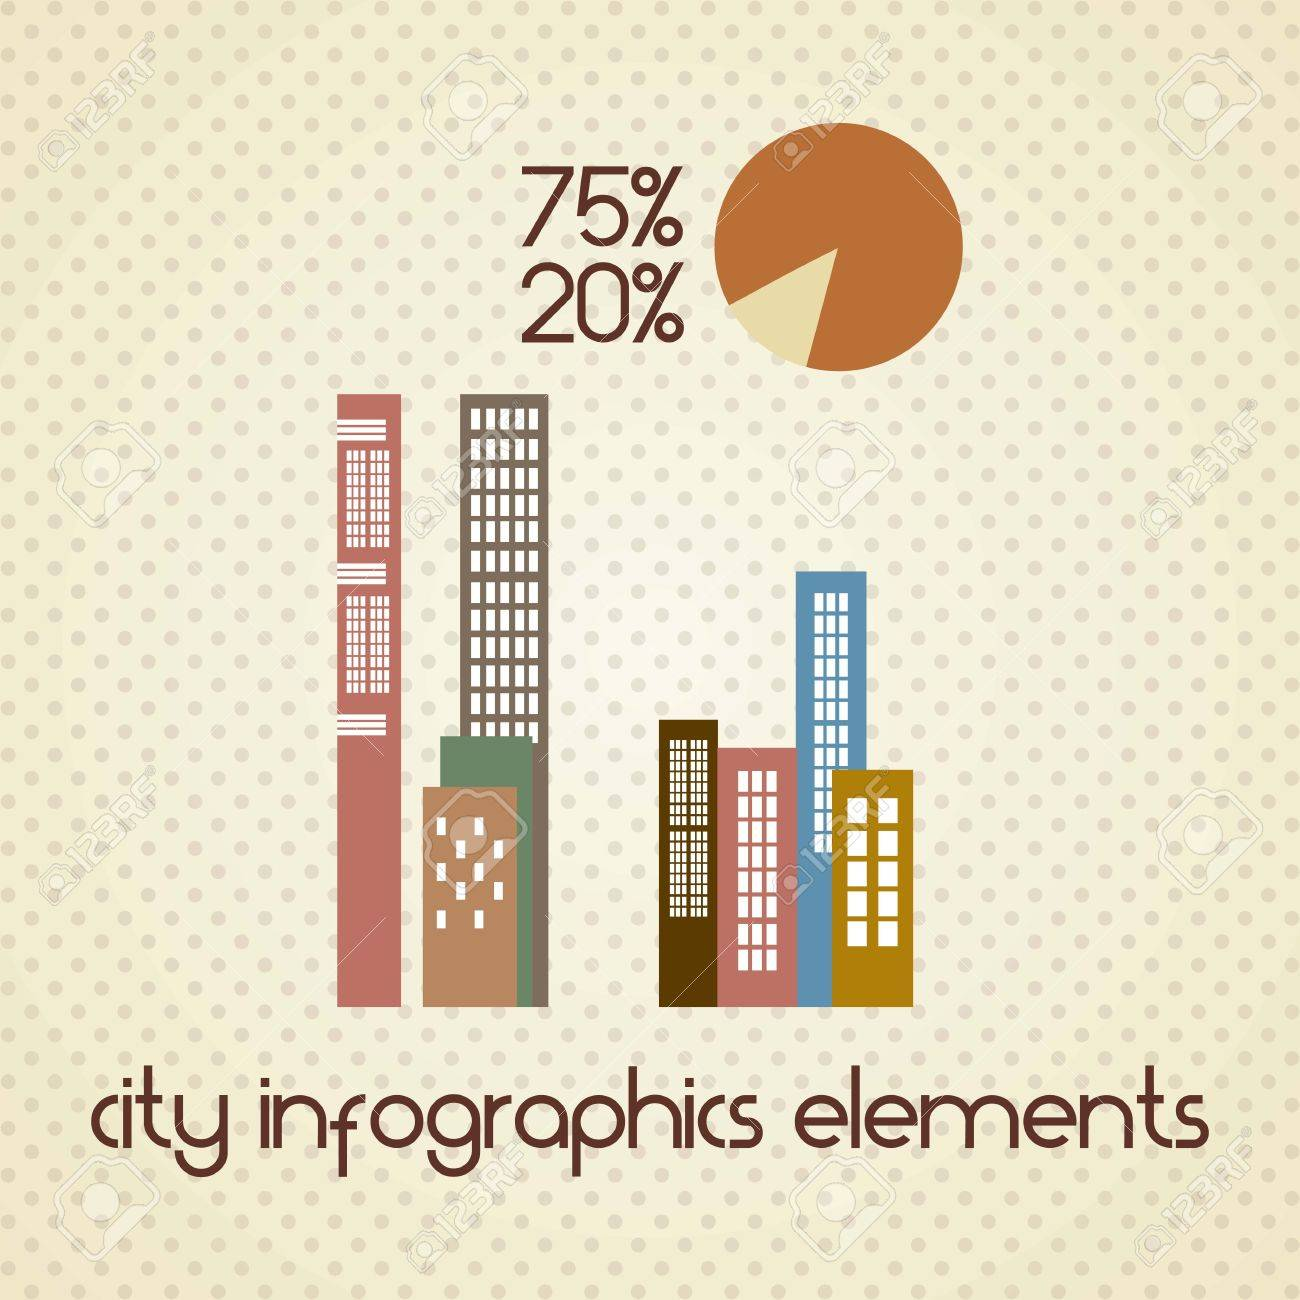 Buildings for city infographics elements. On vintage background Stock Vector - 17349140